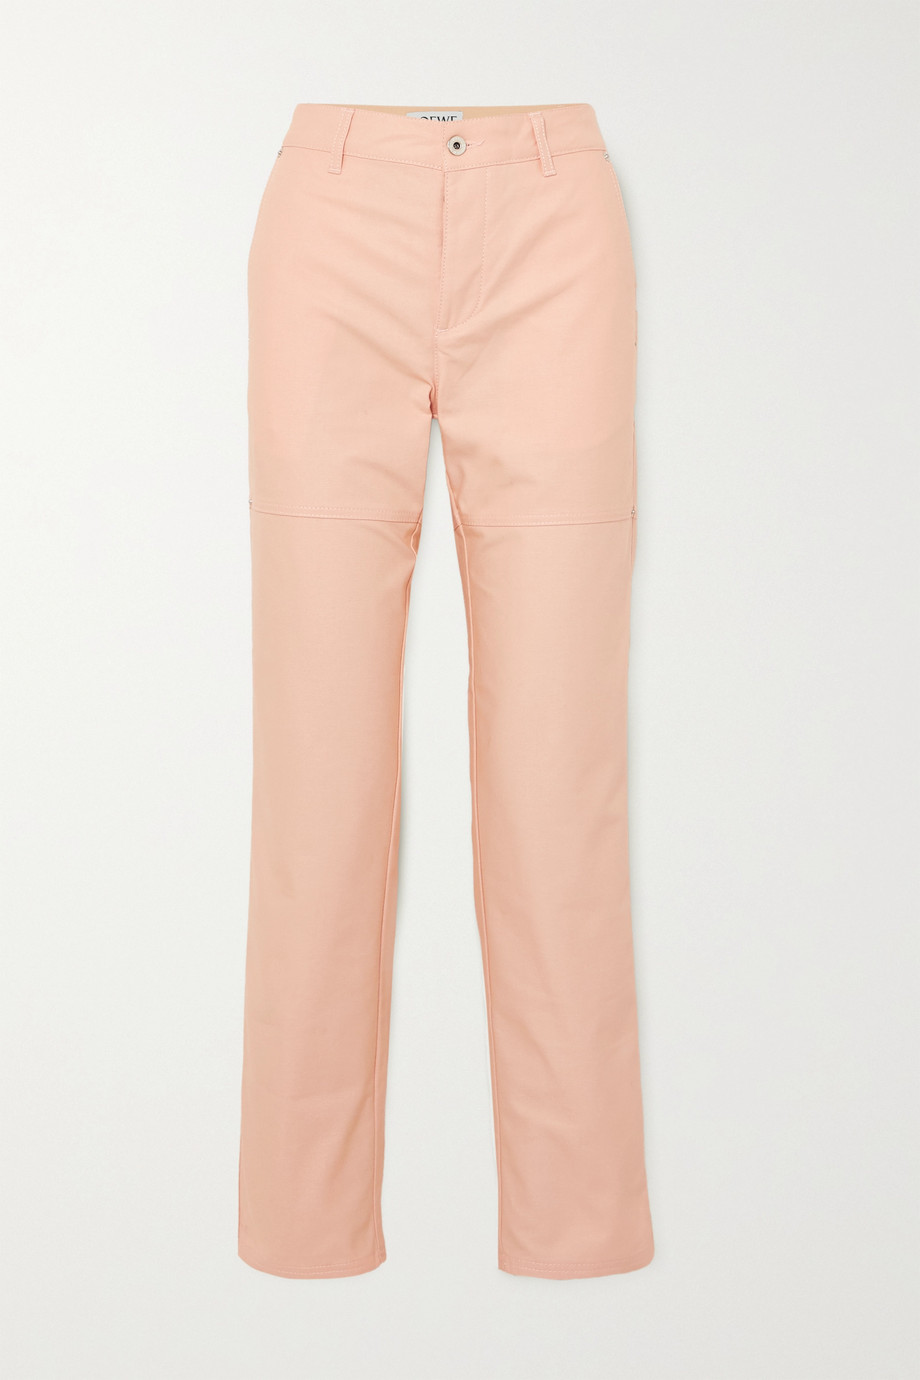 Loewe + Ken Price La Palme printed leather-trimmed high-rise straight-leg jeans